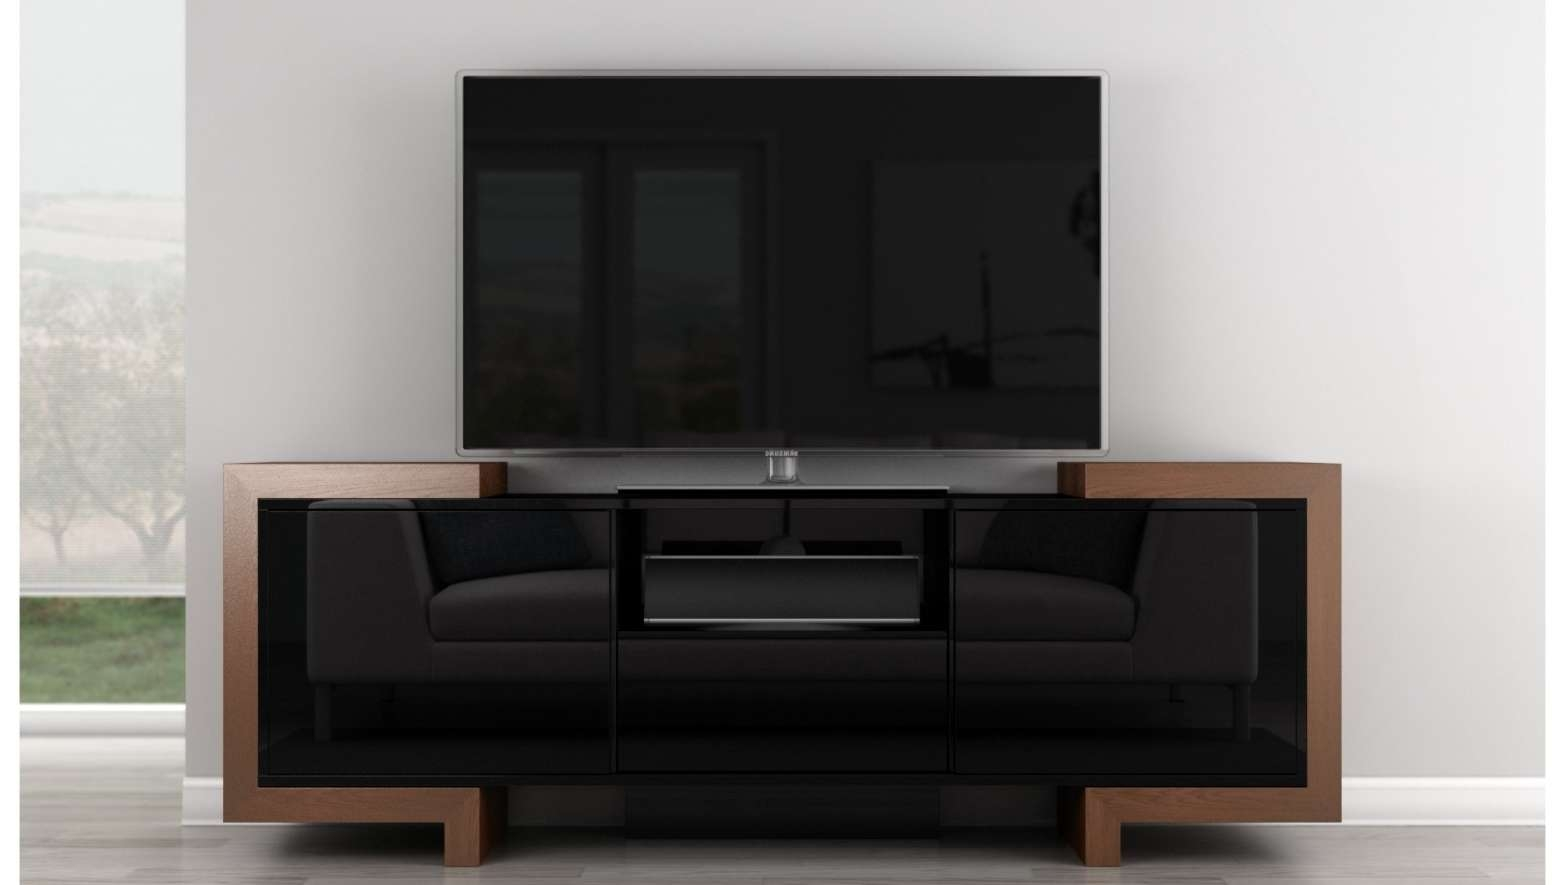 Engaging 65 Inch Tv Stands With Integrated Mount Tags : 65 Inch Tv Within 65 Inch Tv Stands With Integrated Mount (View 2 of 15)